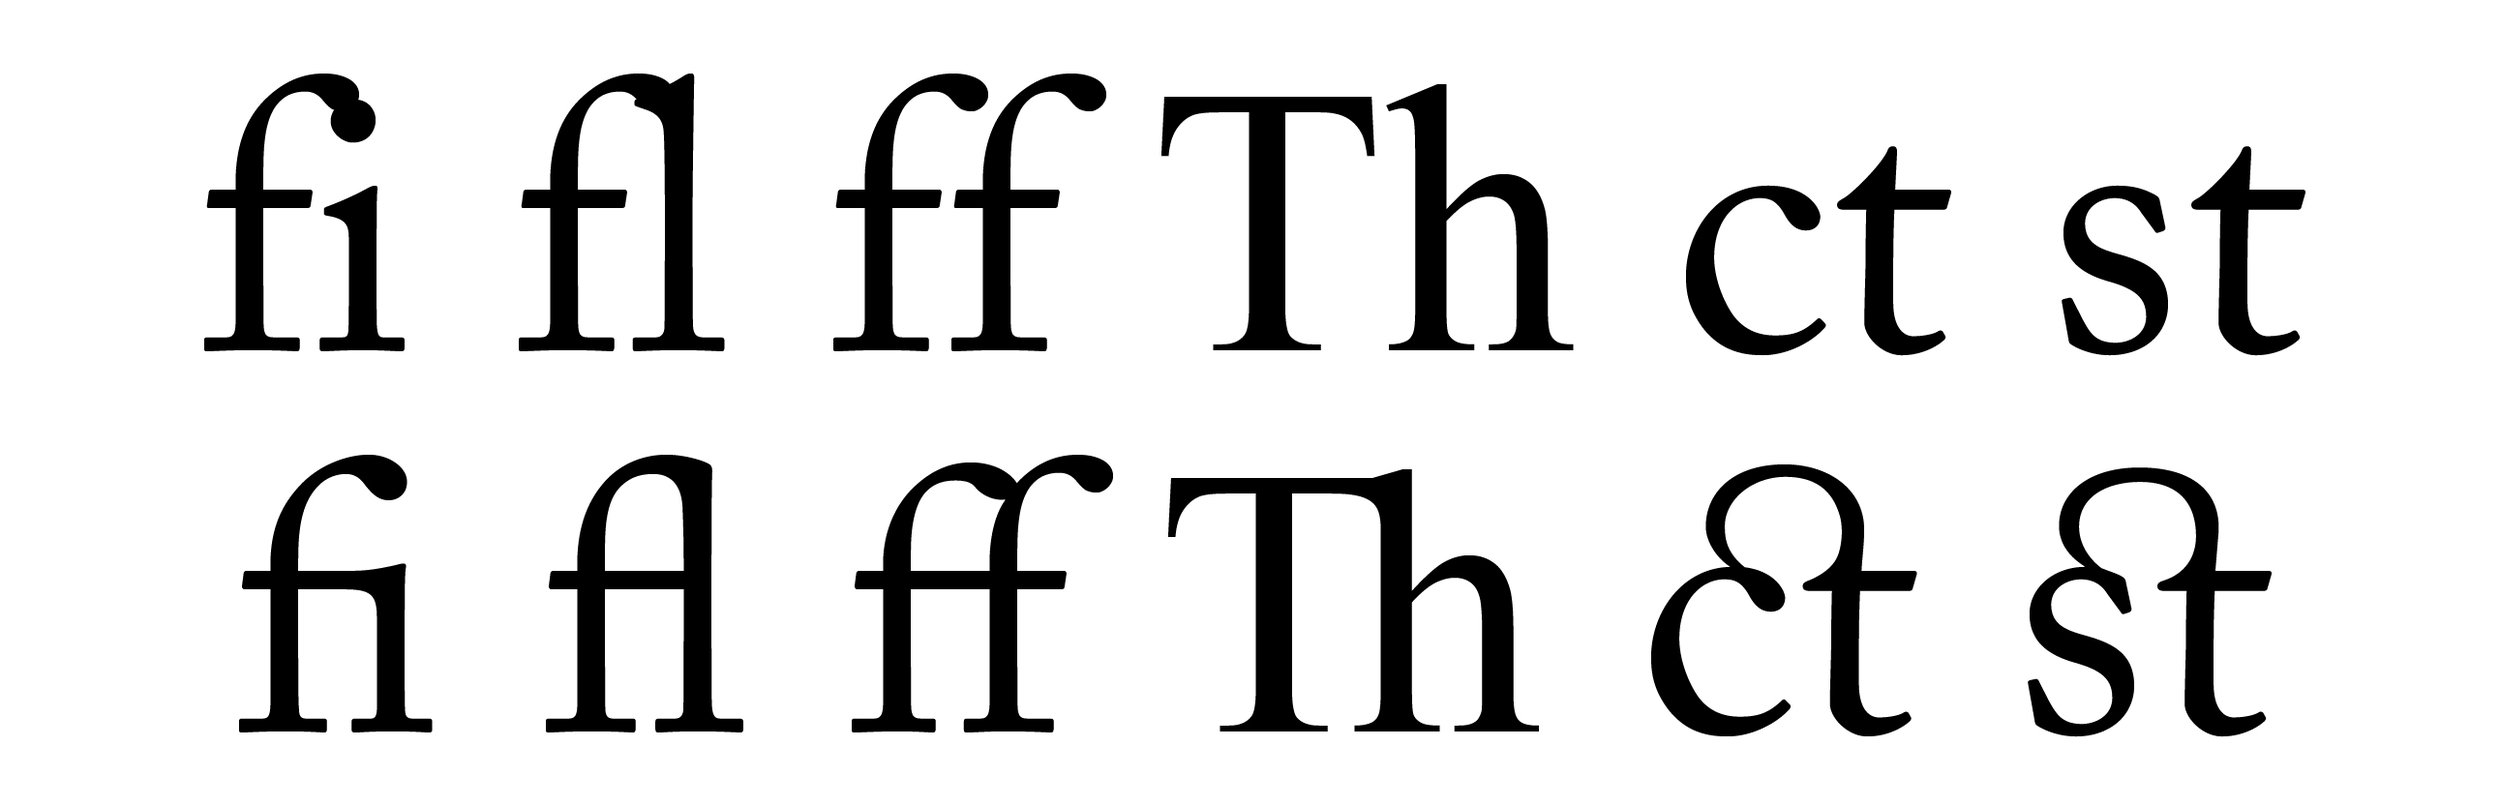 A ligature is a special combination of two glyphs that, when they appear next to each other, will form a single glyph.